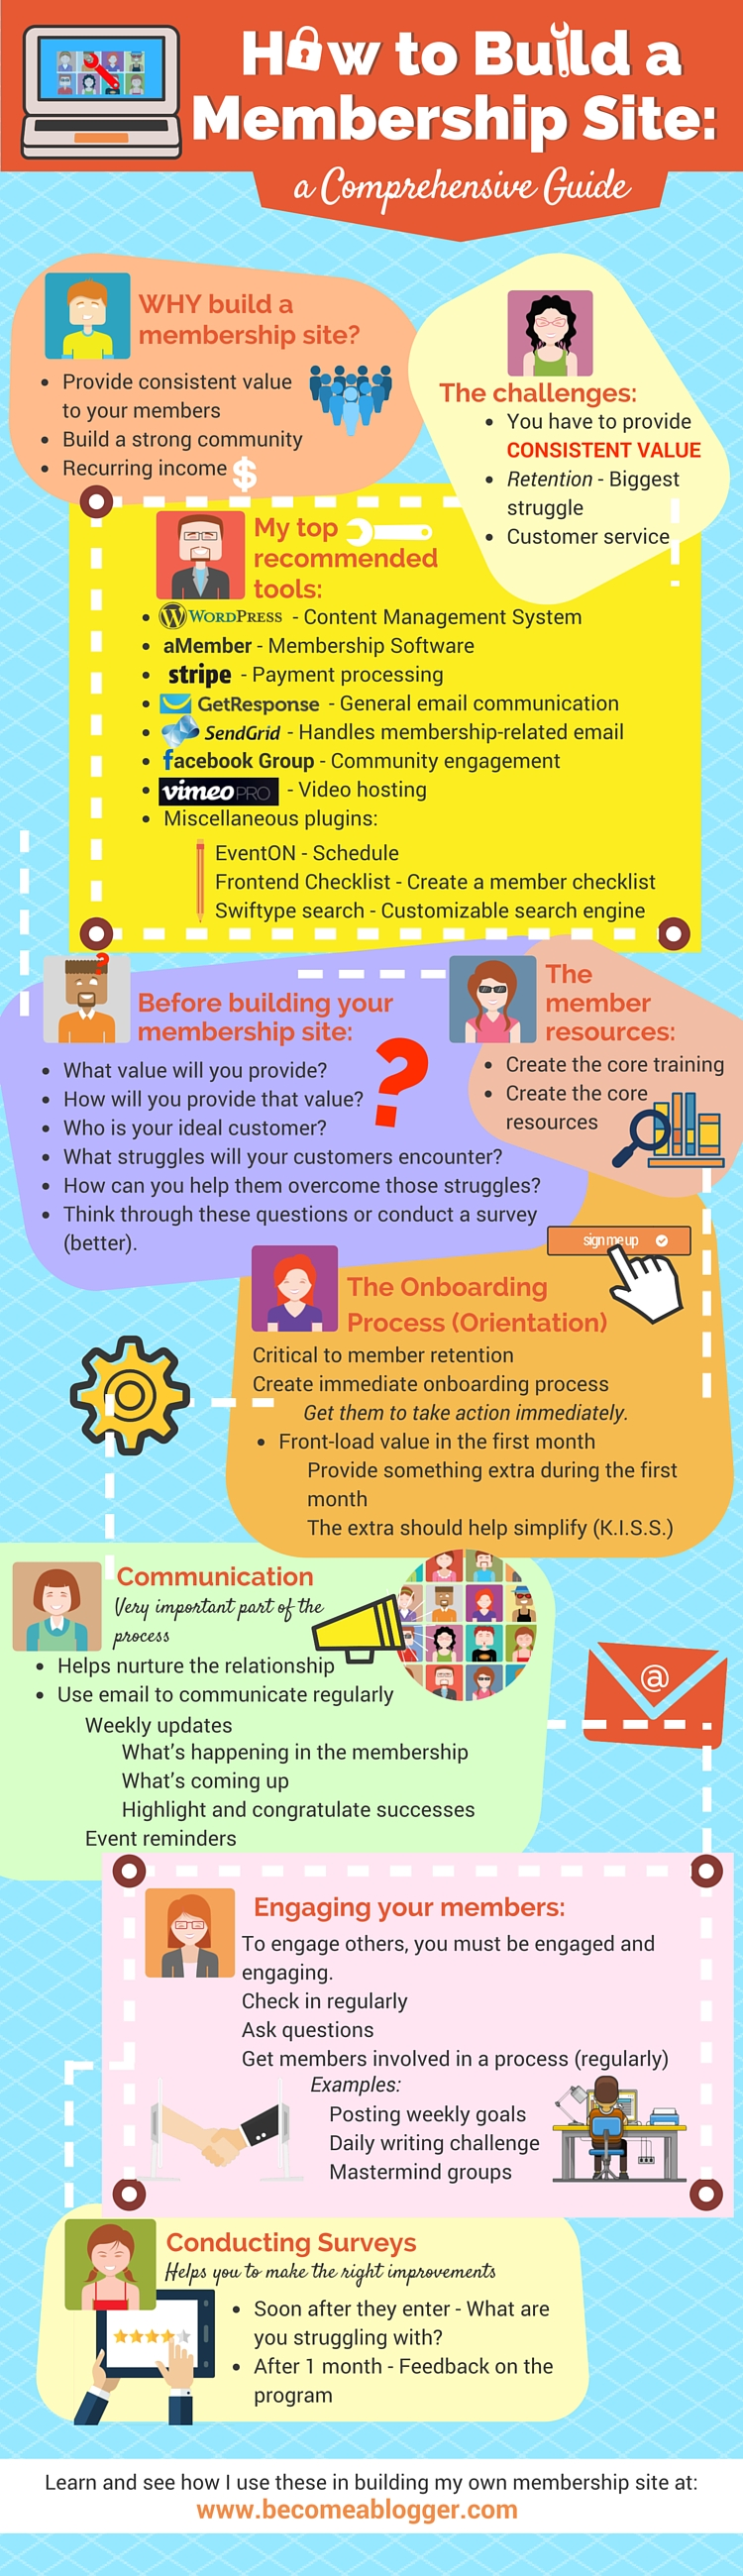 238_Membership Site_Infographic